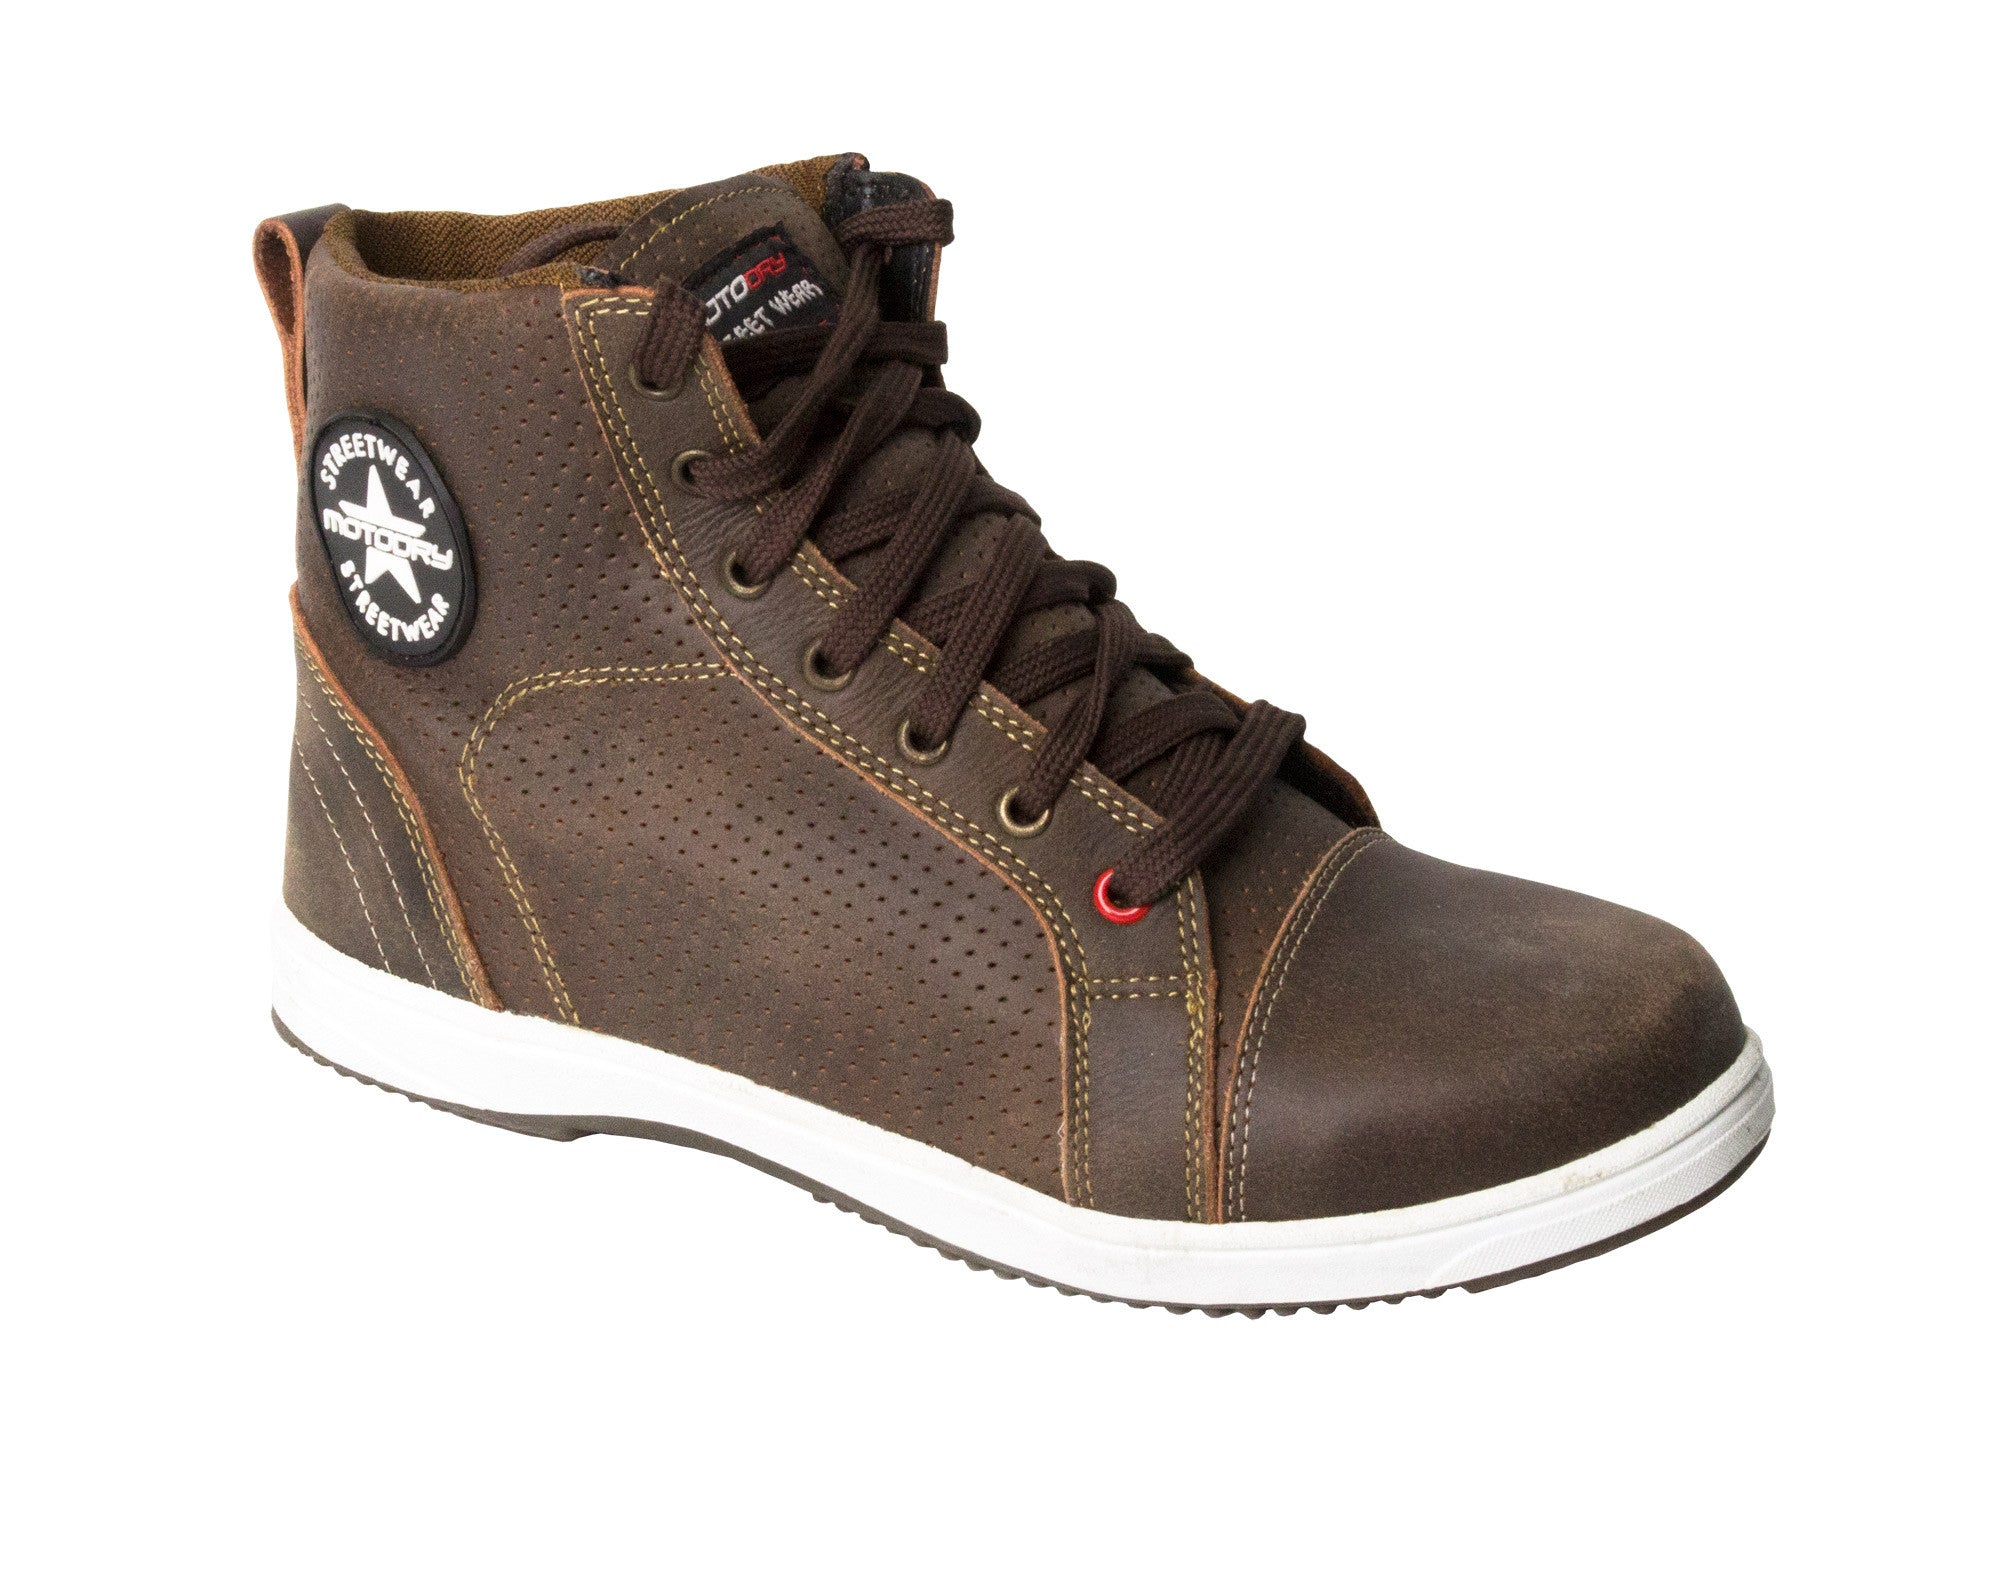 MOTODRY BOOTS LADY URBAN LEATHER BROWN SPORTS/TOURING/CASUAL BOOTS